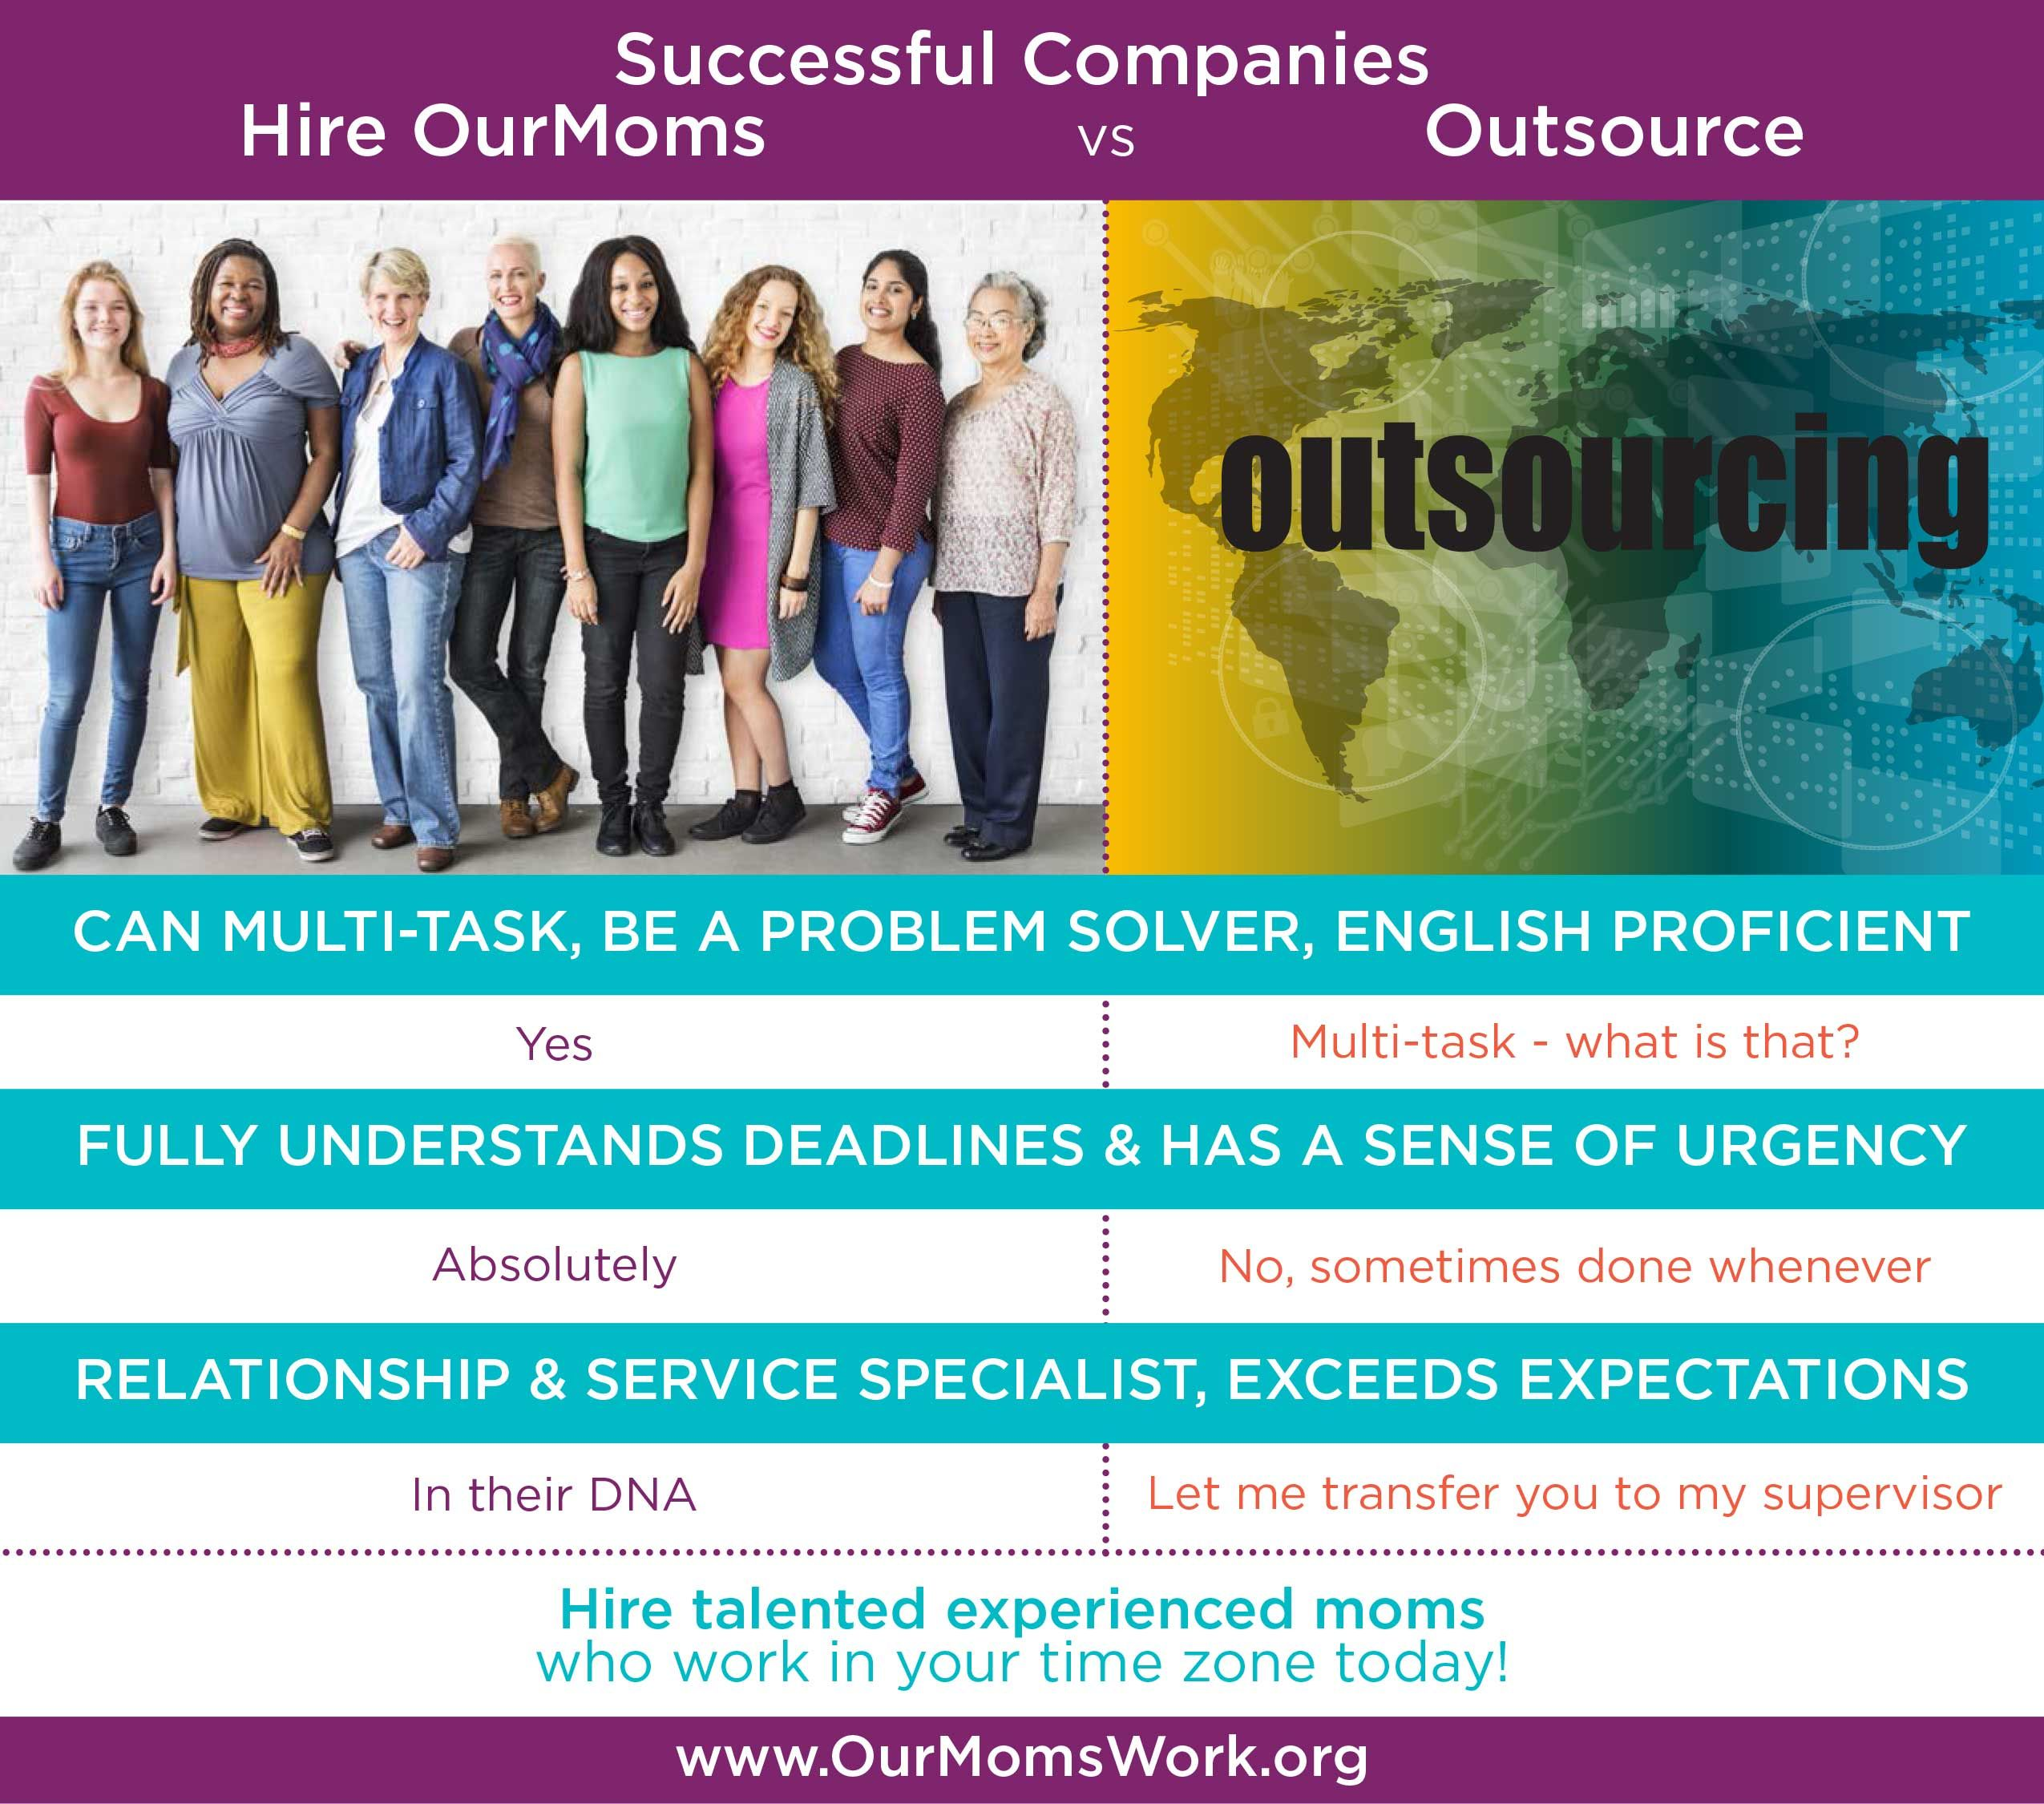 OMW-INFOGRAPHIC-OurMoms-vs-outsourcing-v3